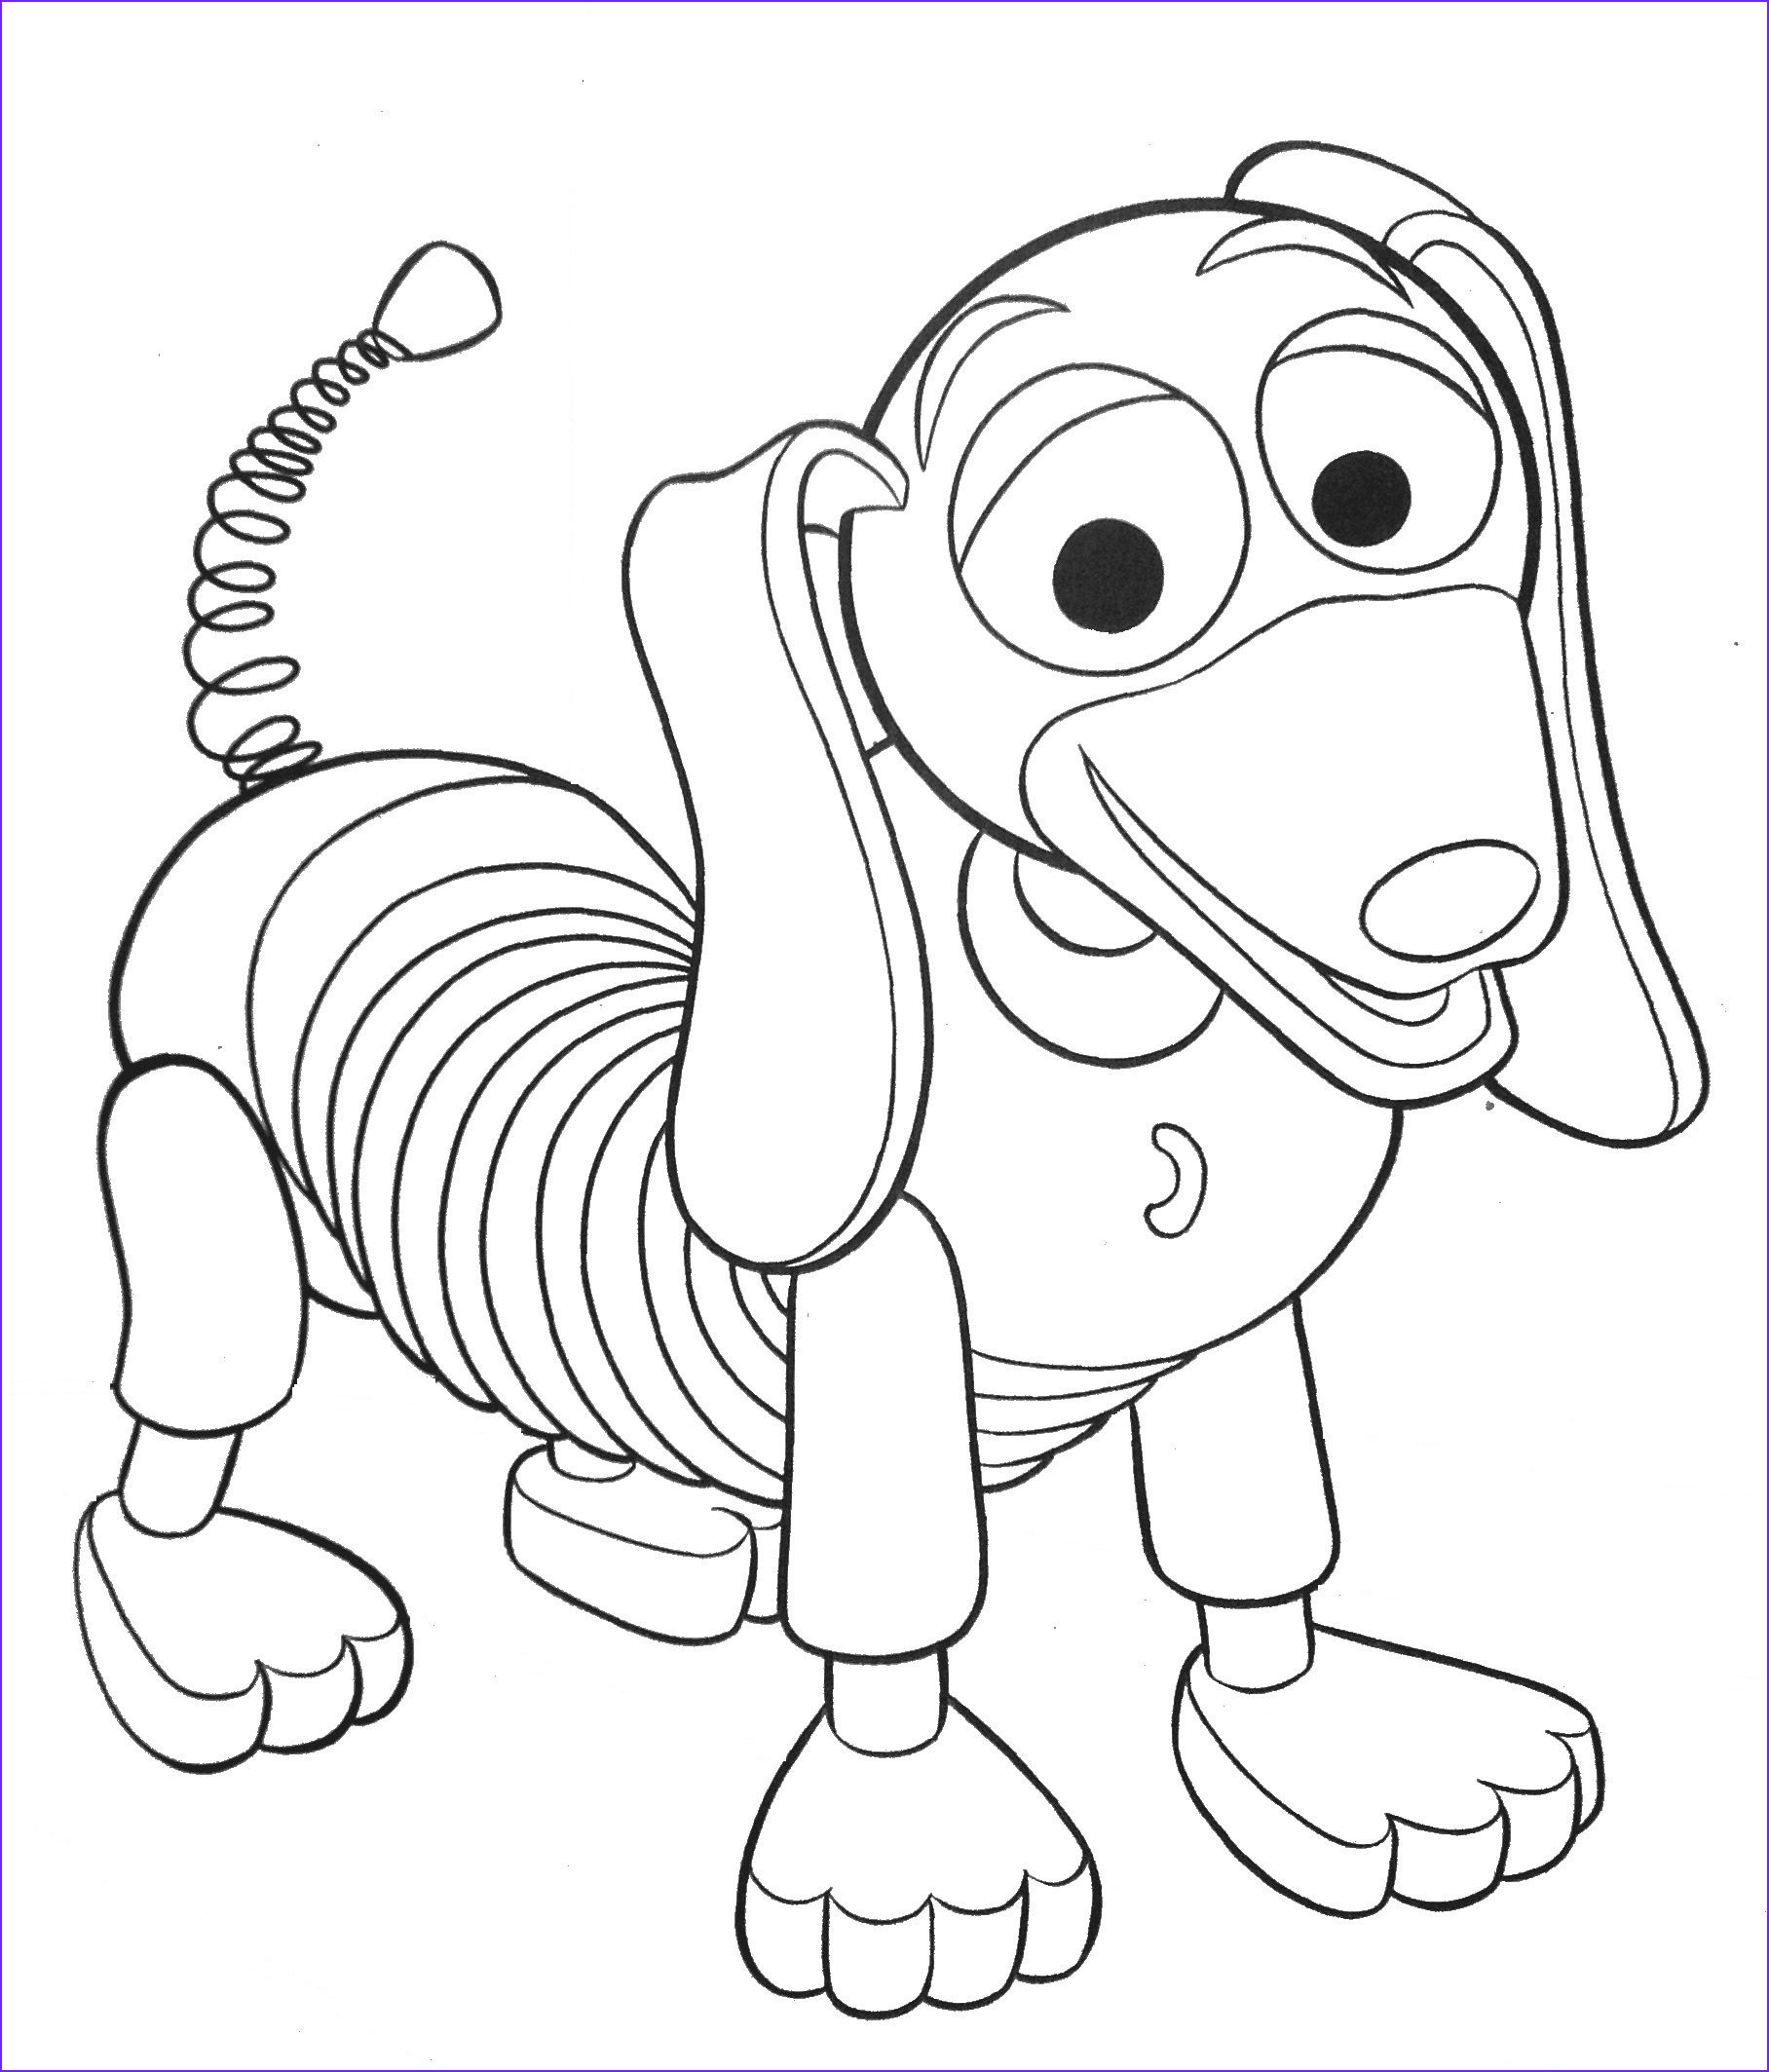 Toy Story Coloring Page Unique Photos toy Story Coloring Pages toy Story Slinky Dog Coloring